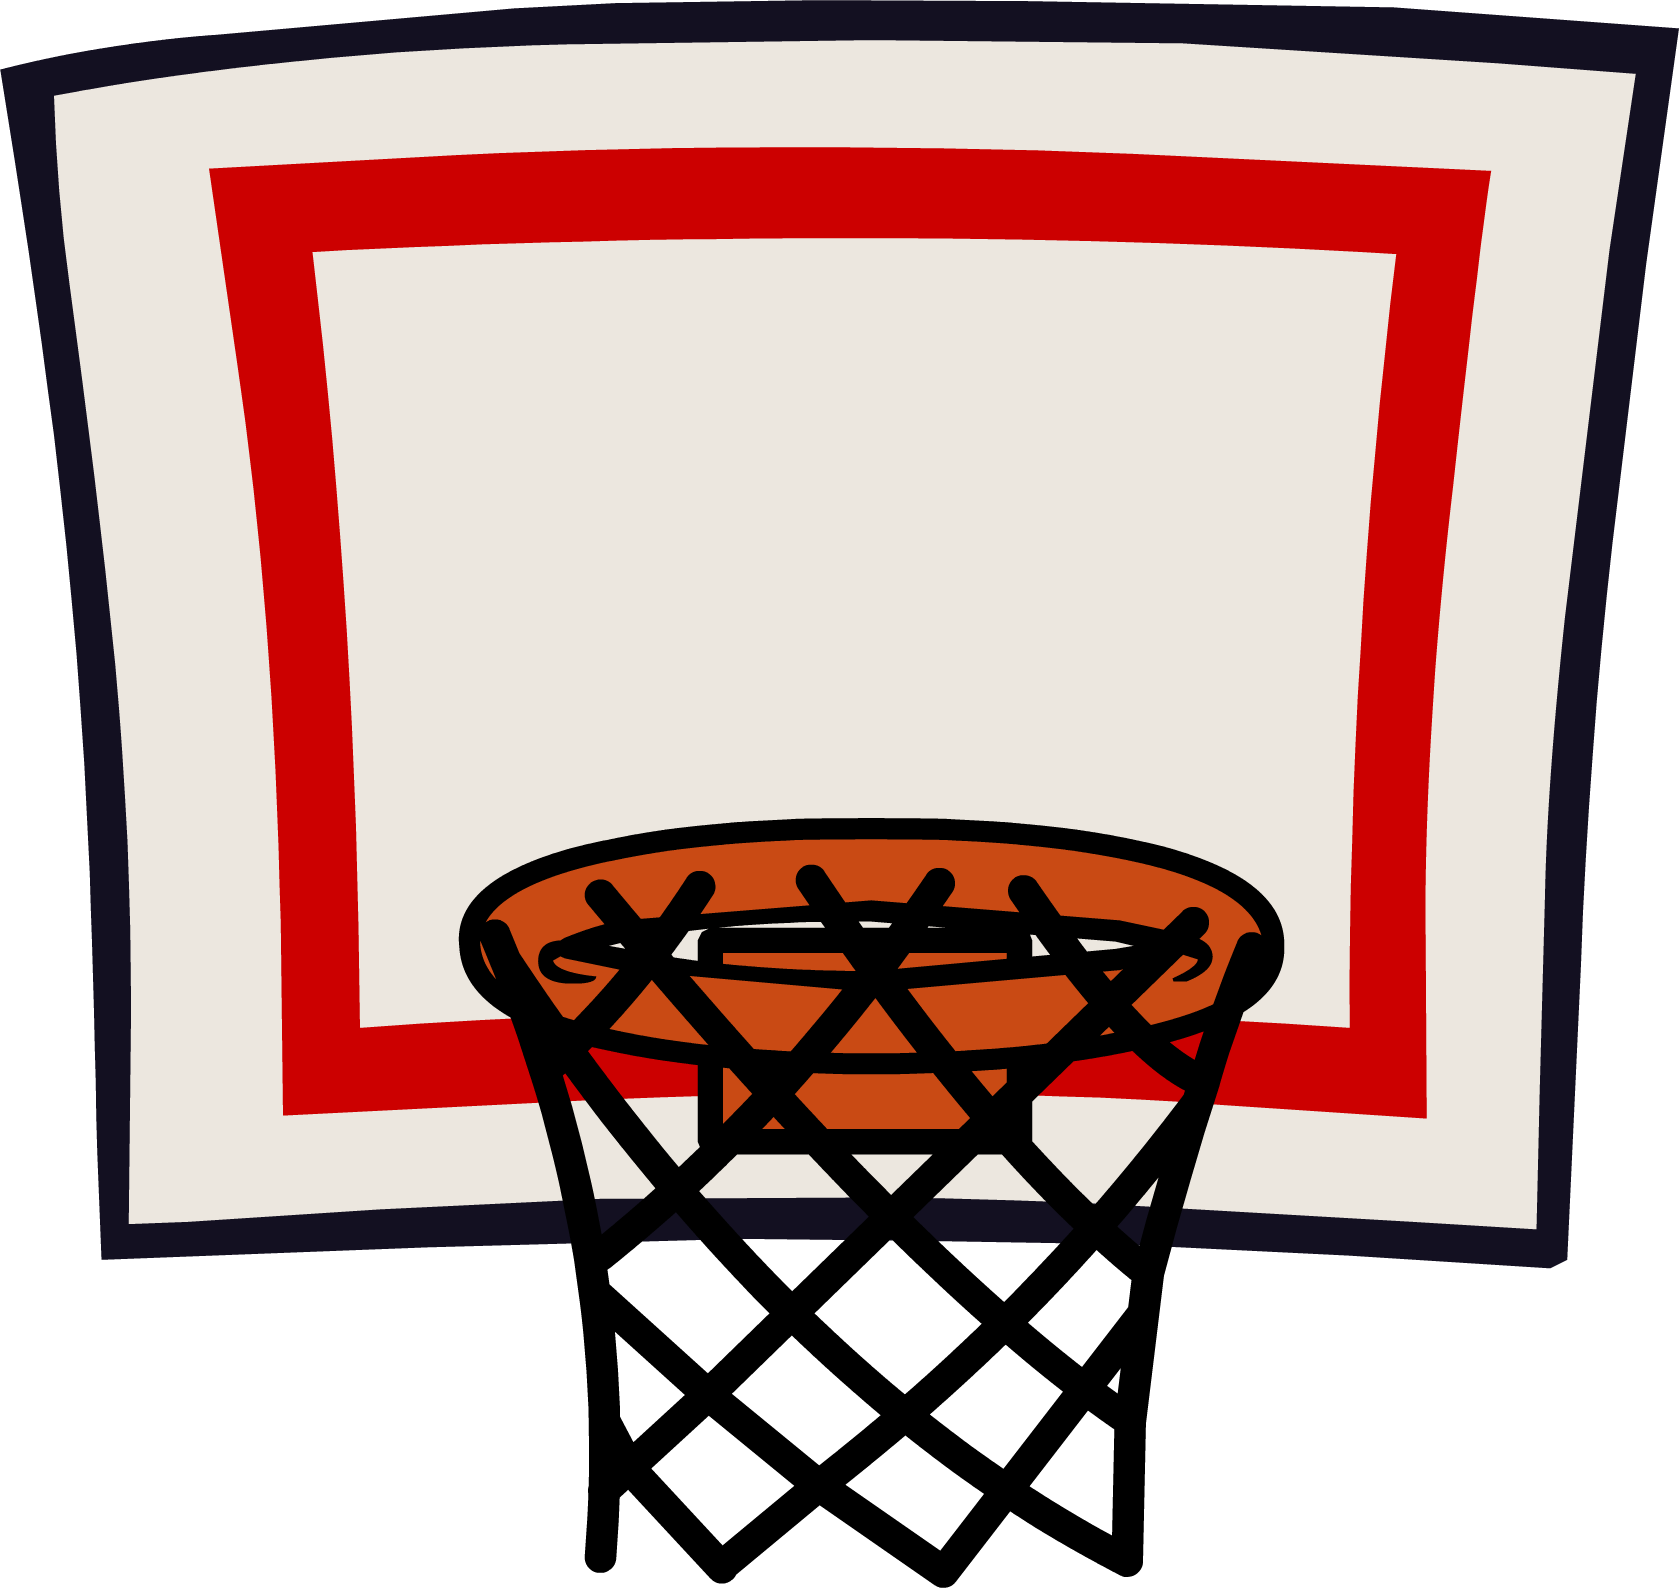 Distressed basketball and net clipart jpg freeuse stock Hoop basketball ring net clipart 2 - Clipartix jpg freeuse stock